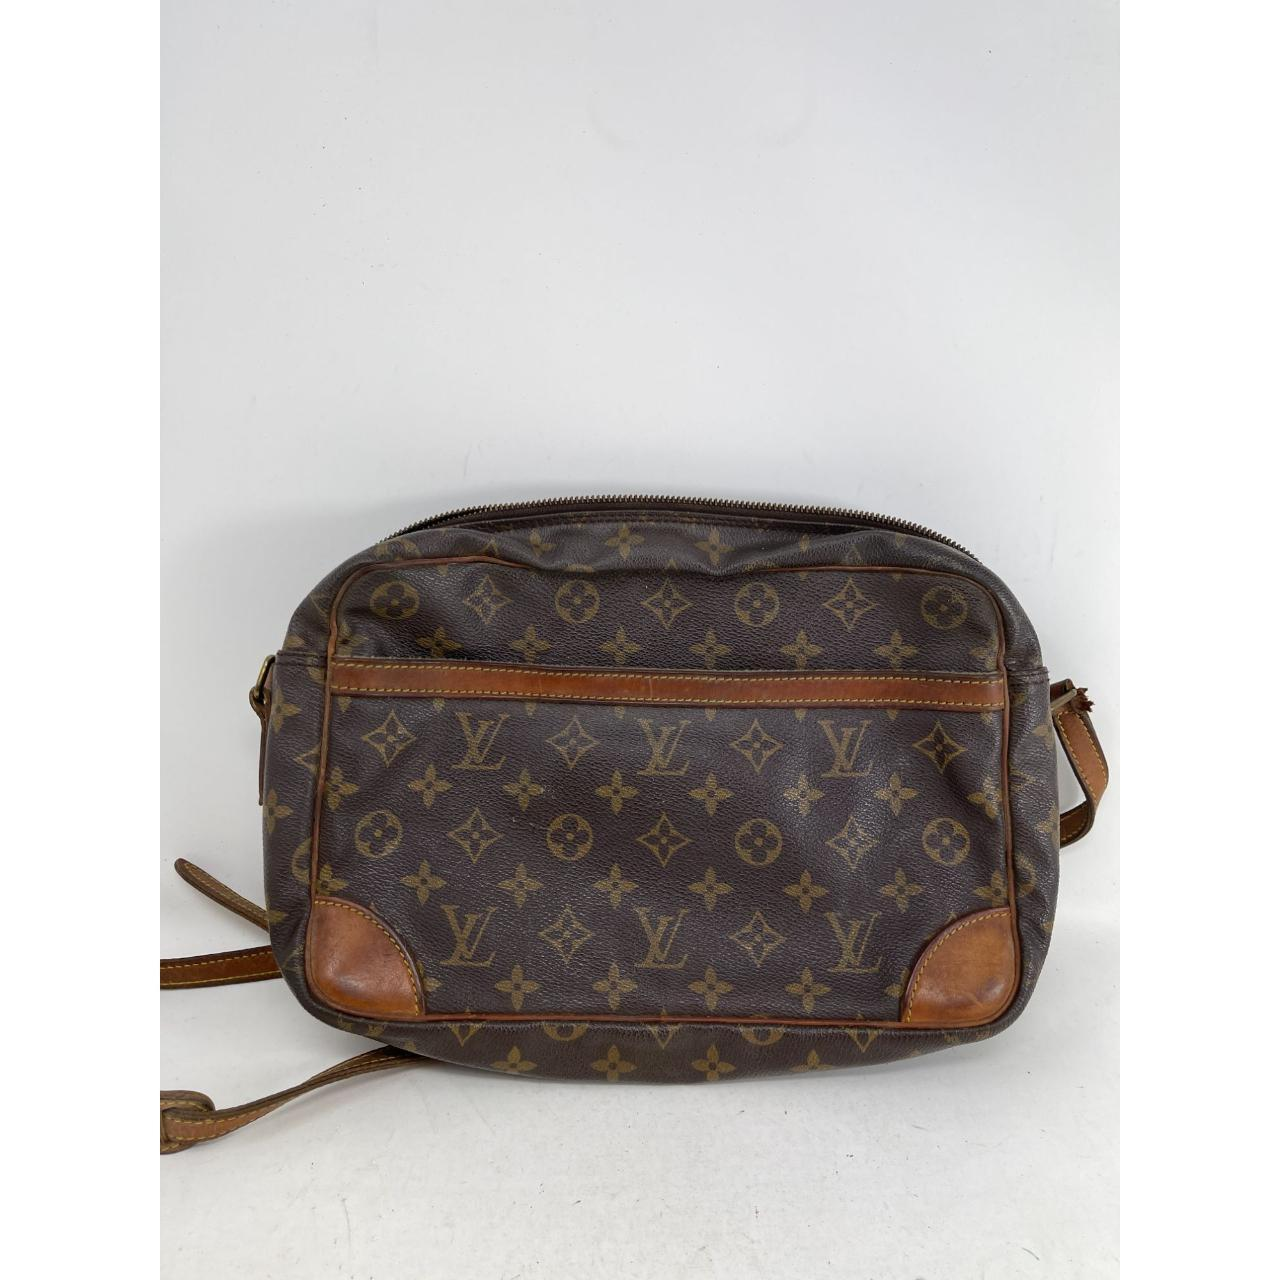 Product Image 1 - Authentic Louis Vuitton bag. Overall